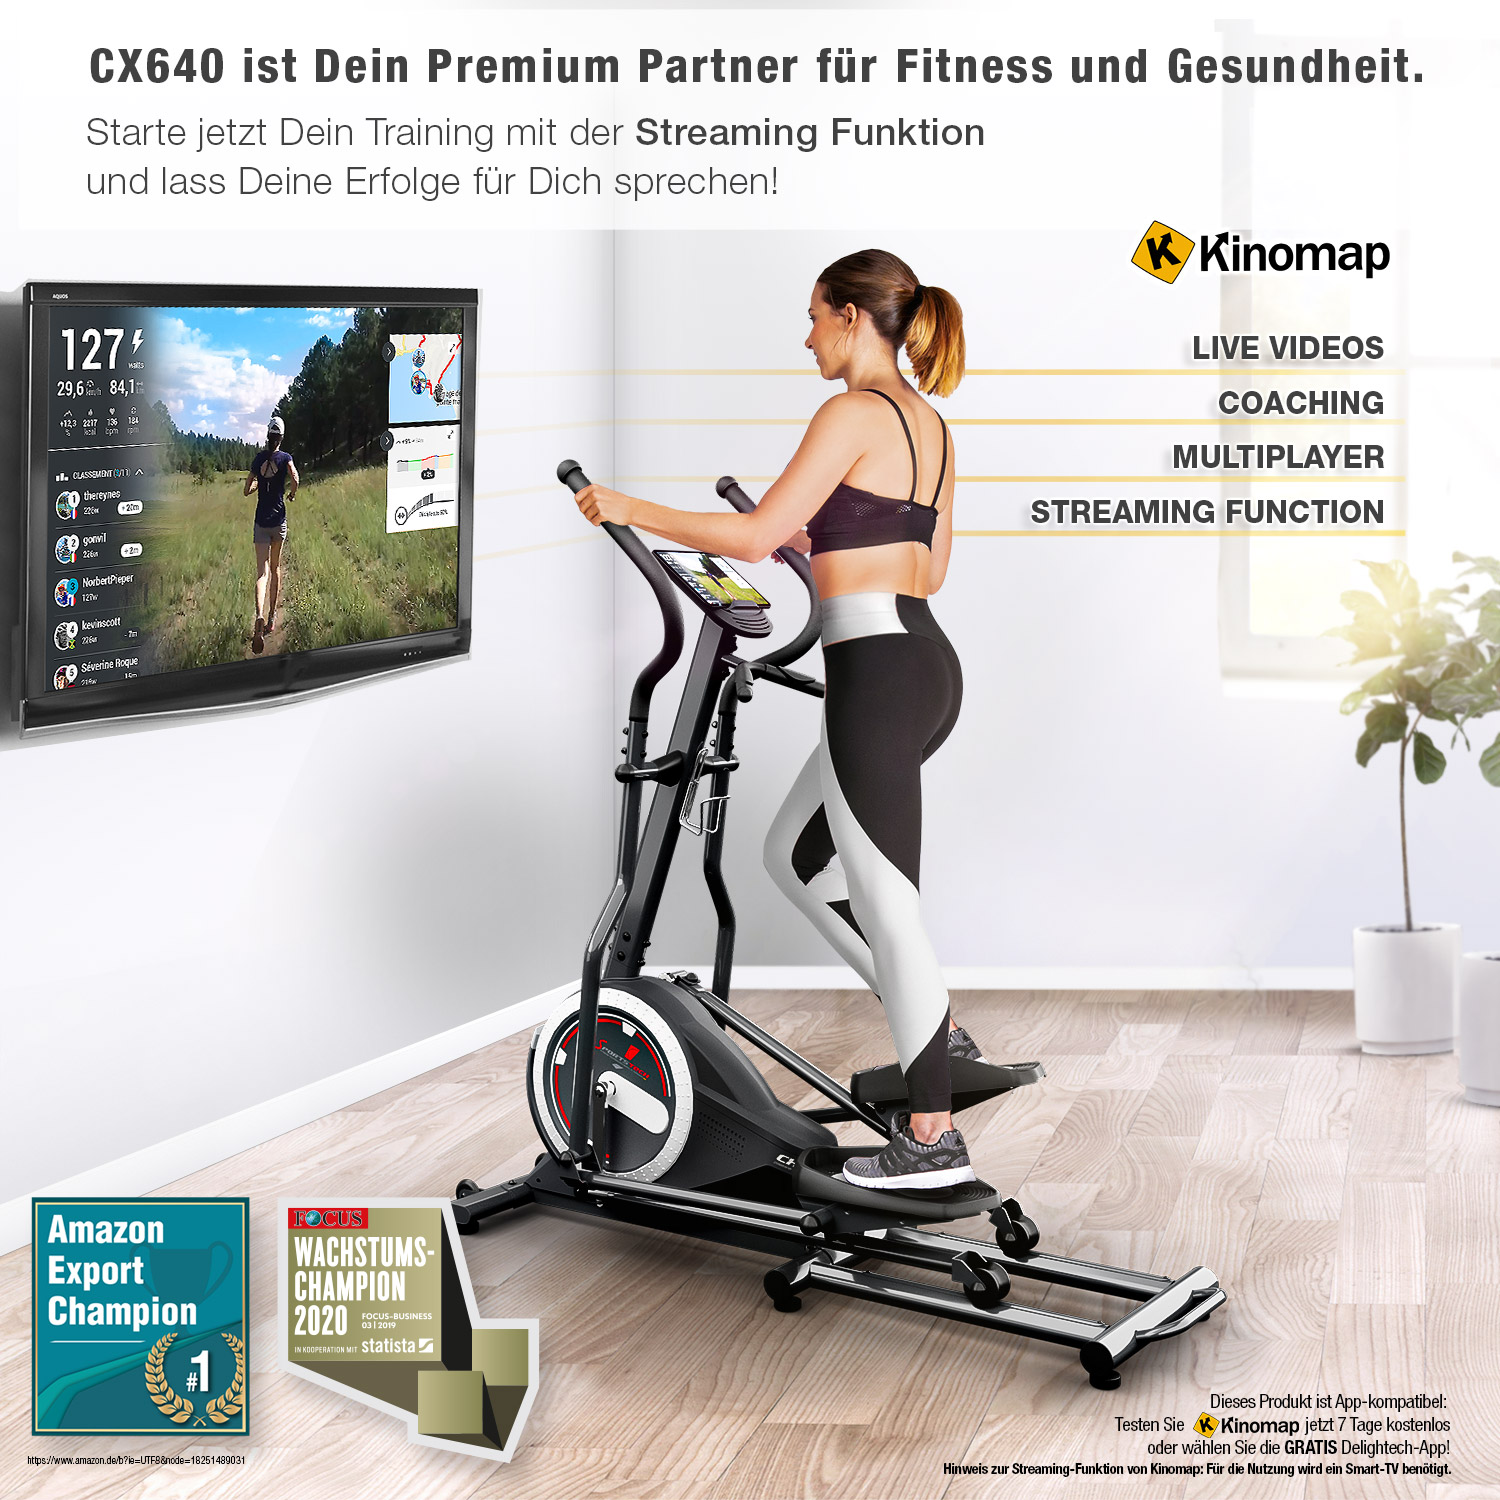 cx640-streaming-function